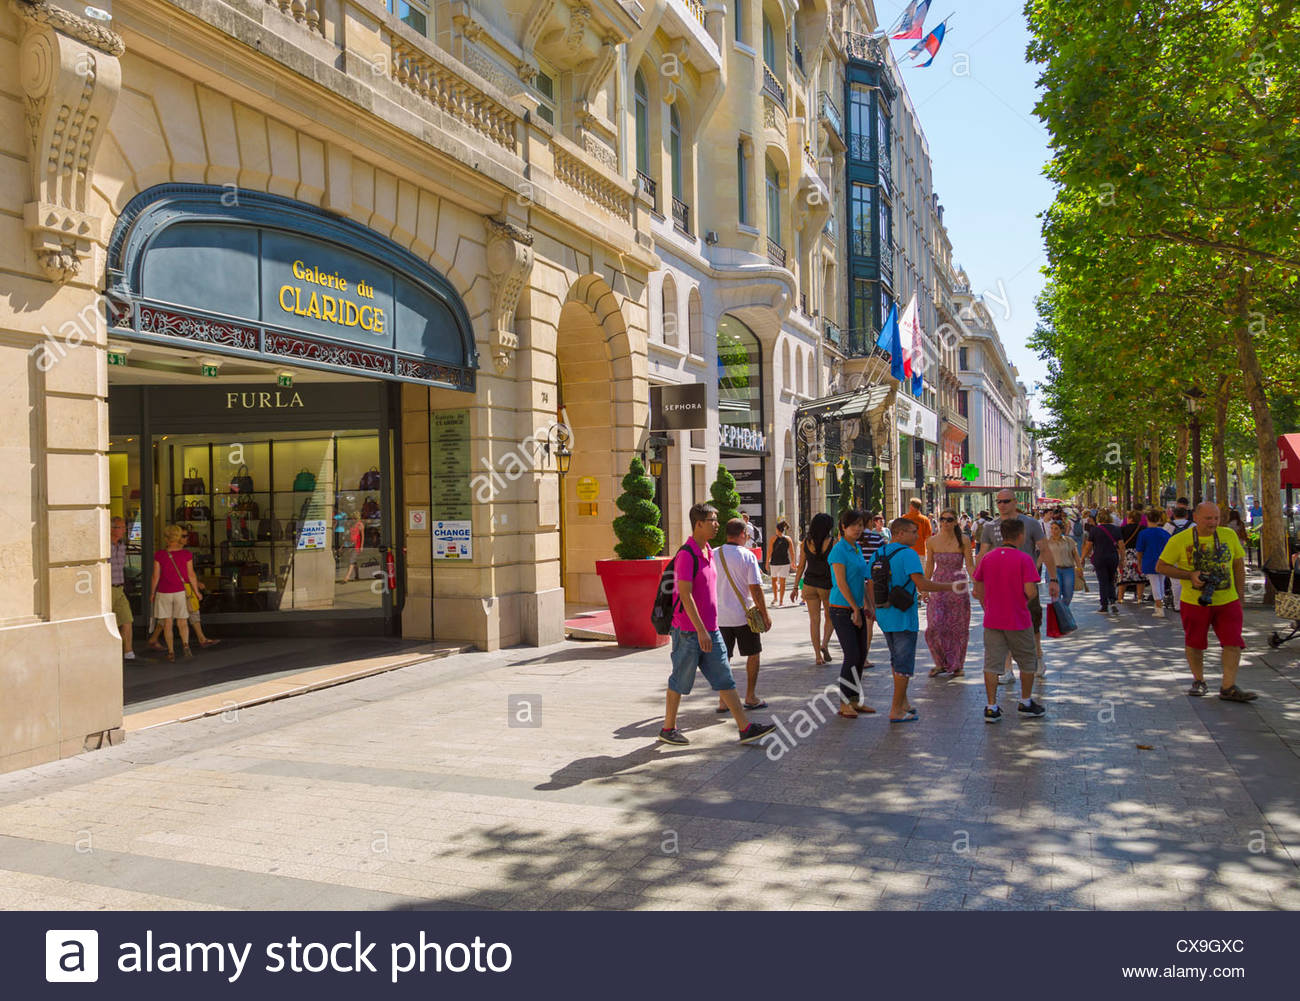 shops on avenue champs elysees paris france stock photo 50612644 alamy. Black Bedroom Furniture Sets. Home Design Ideas